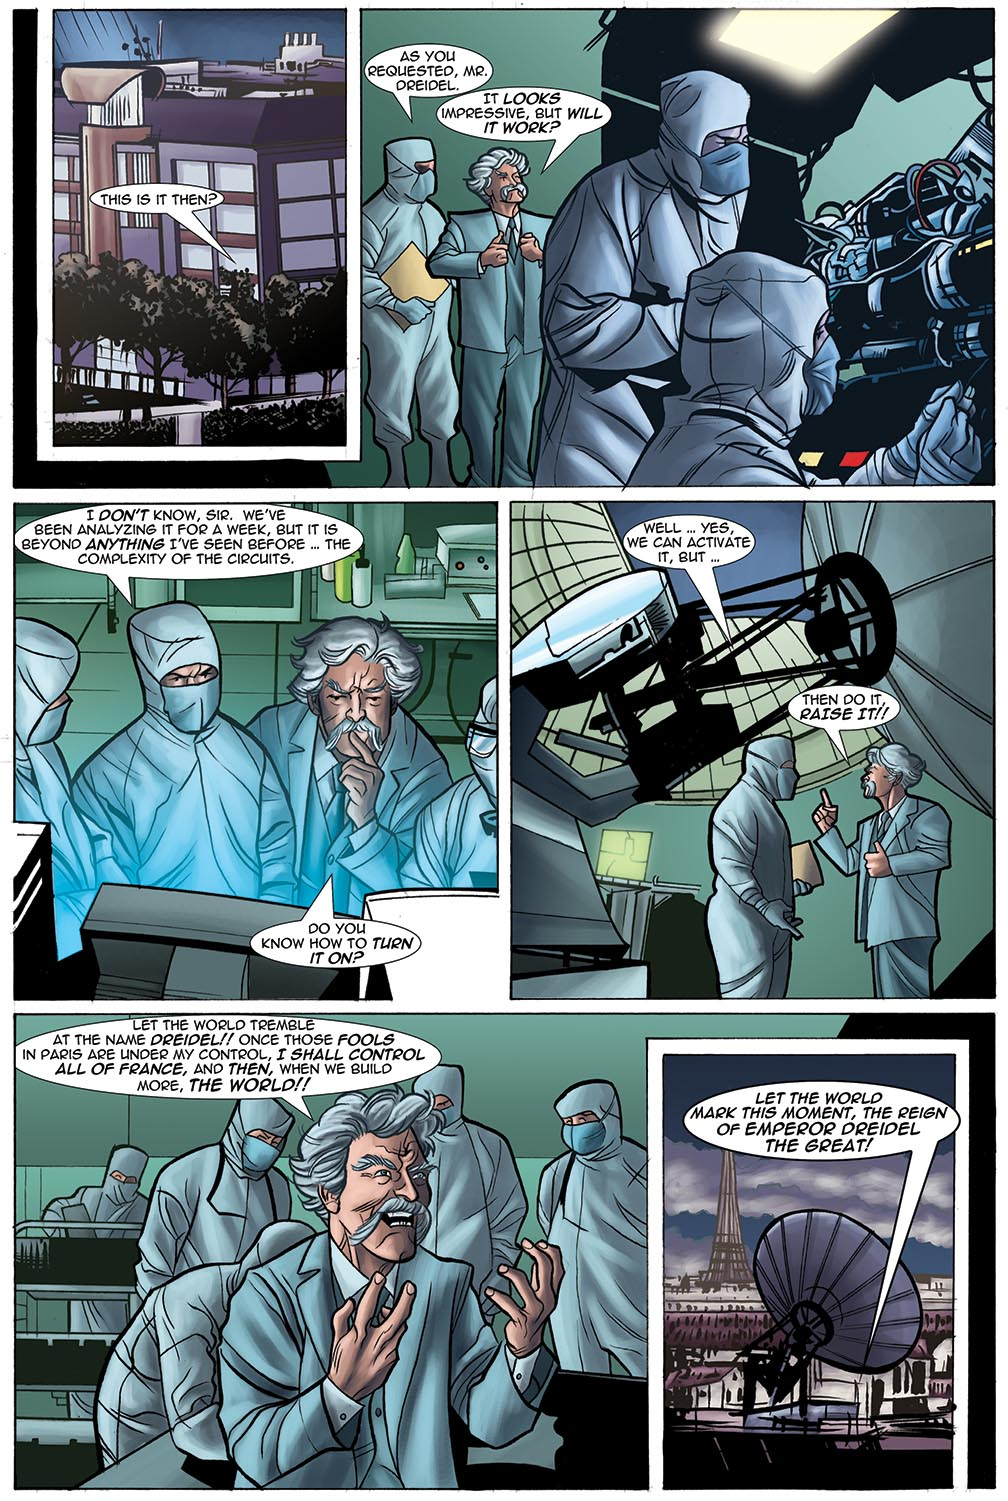 Gateway Legends #1 (2012) Page 15